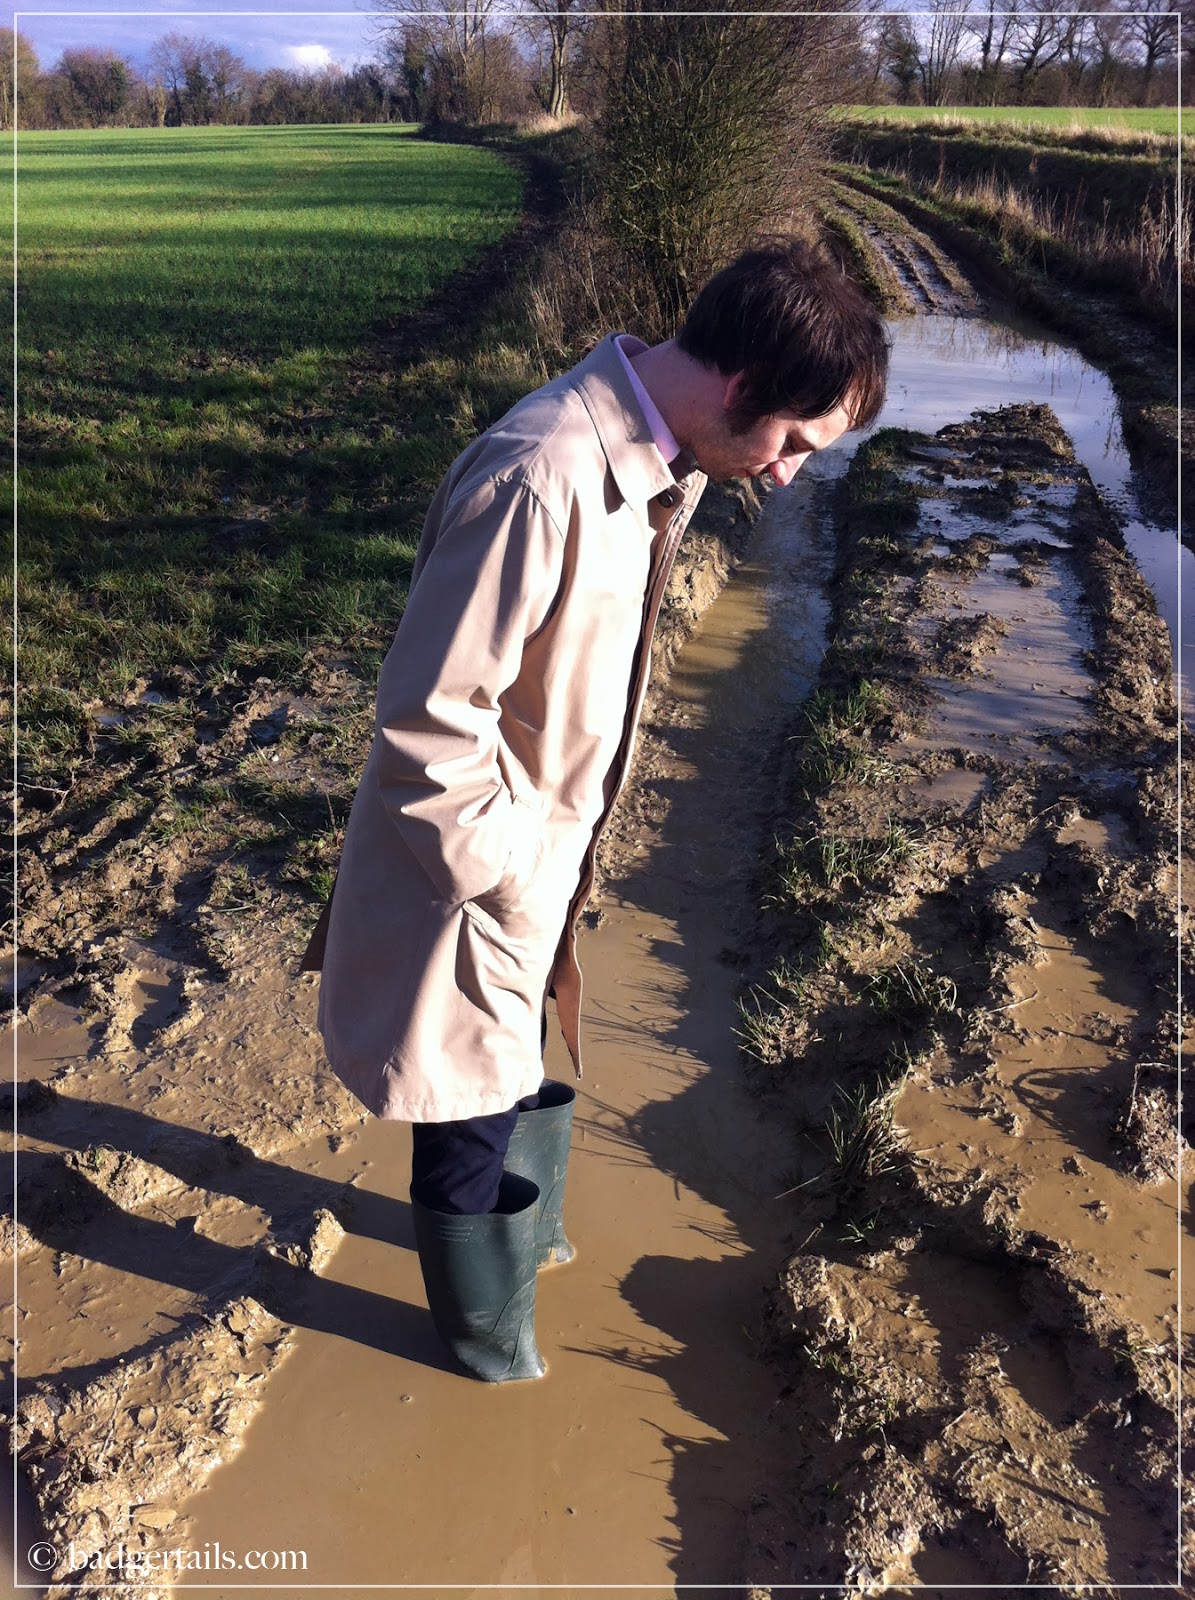 man in wellies and mac stood in puddle